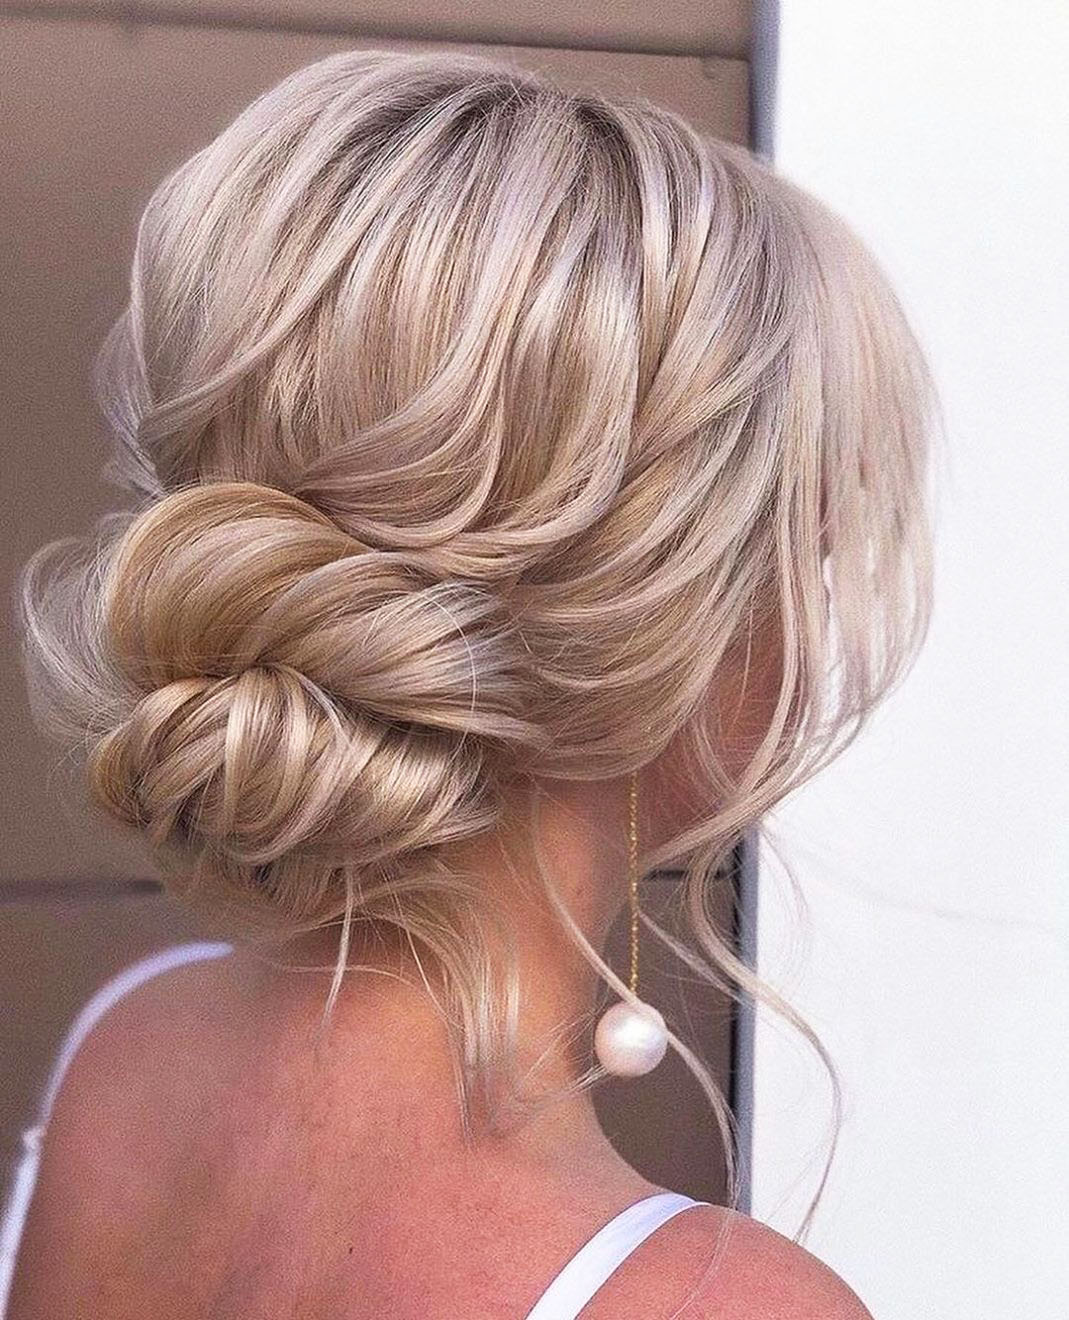 Hairstyles Winter 2020 ideas from hair stylists 13 15